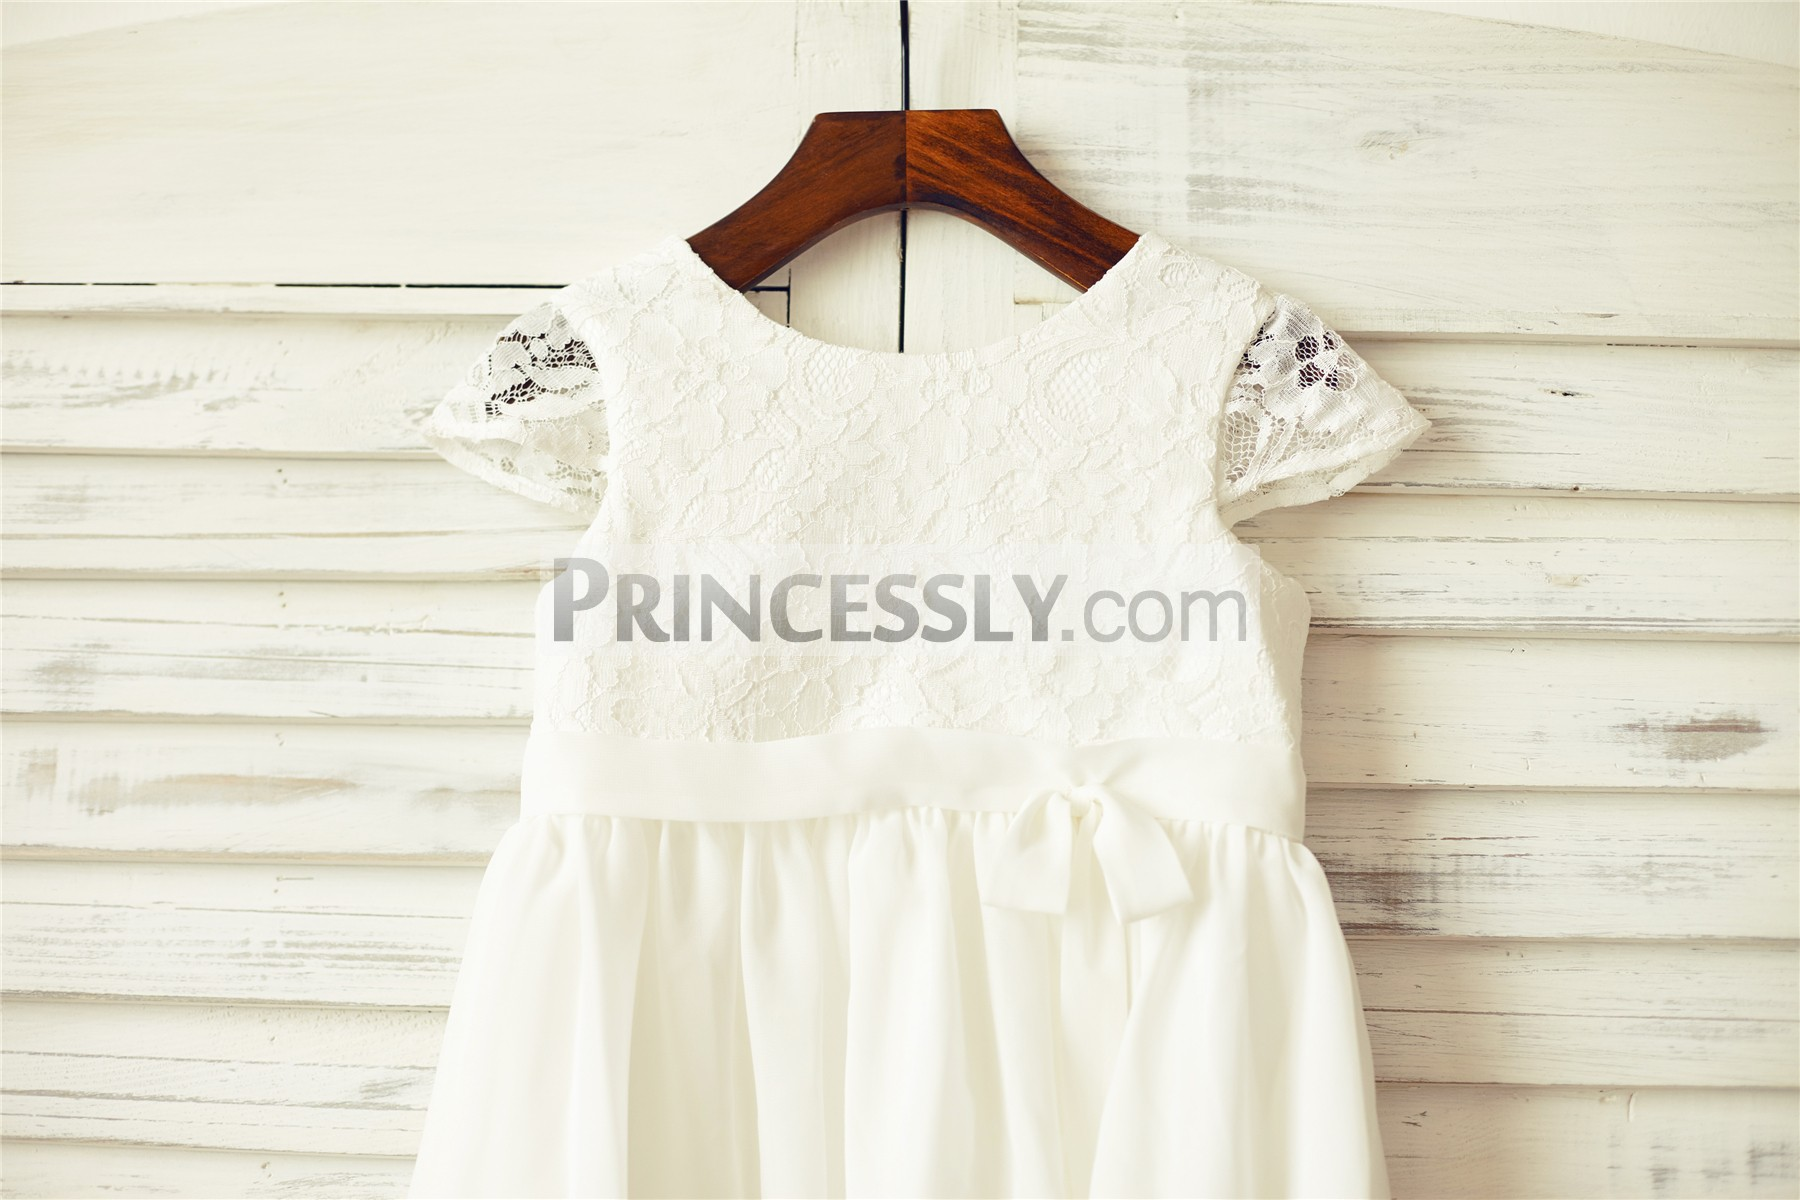 Scoop neckline sheer cap sleeves ivory lace bodice with belt bow